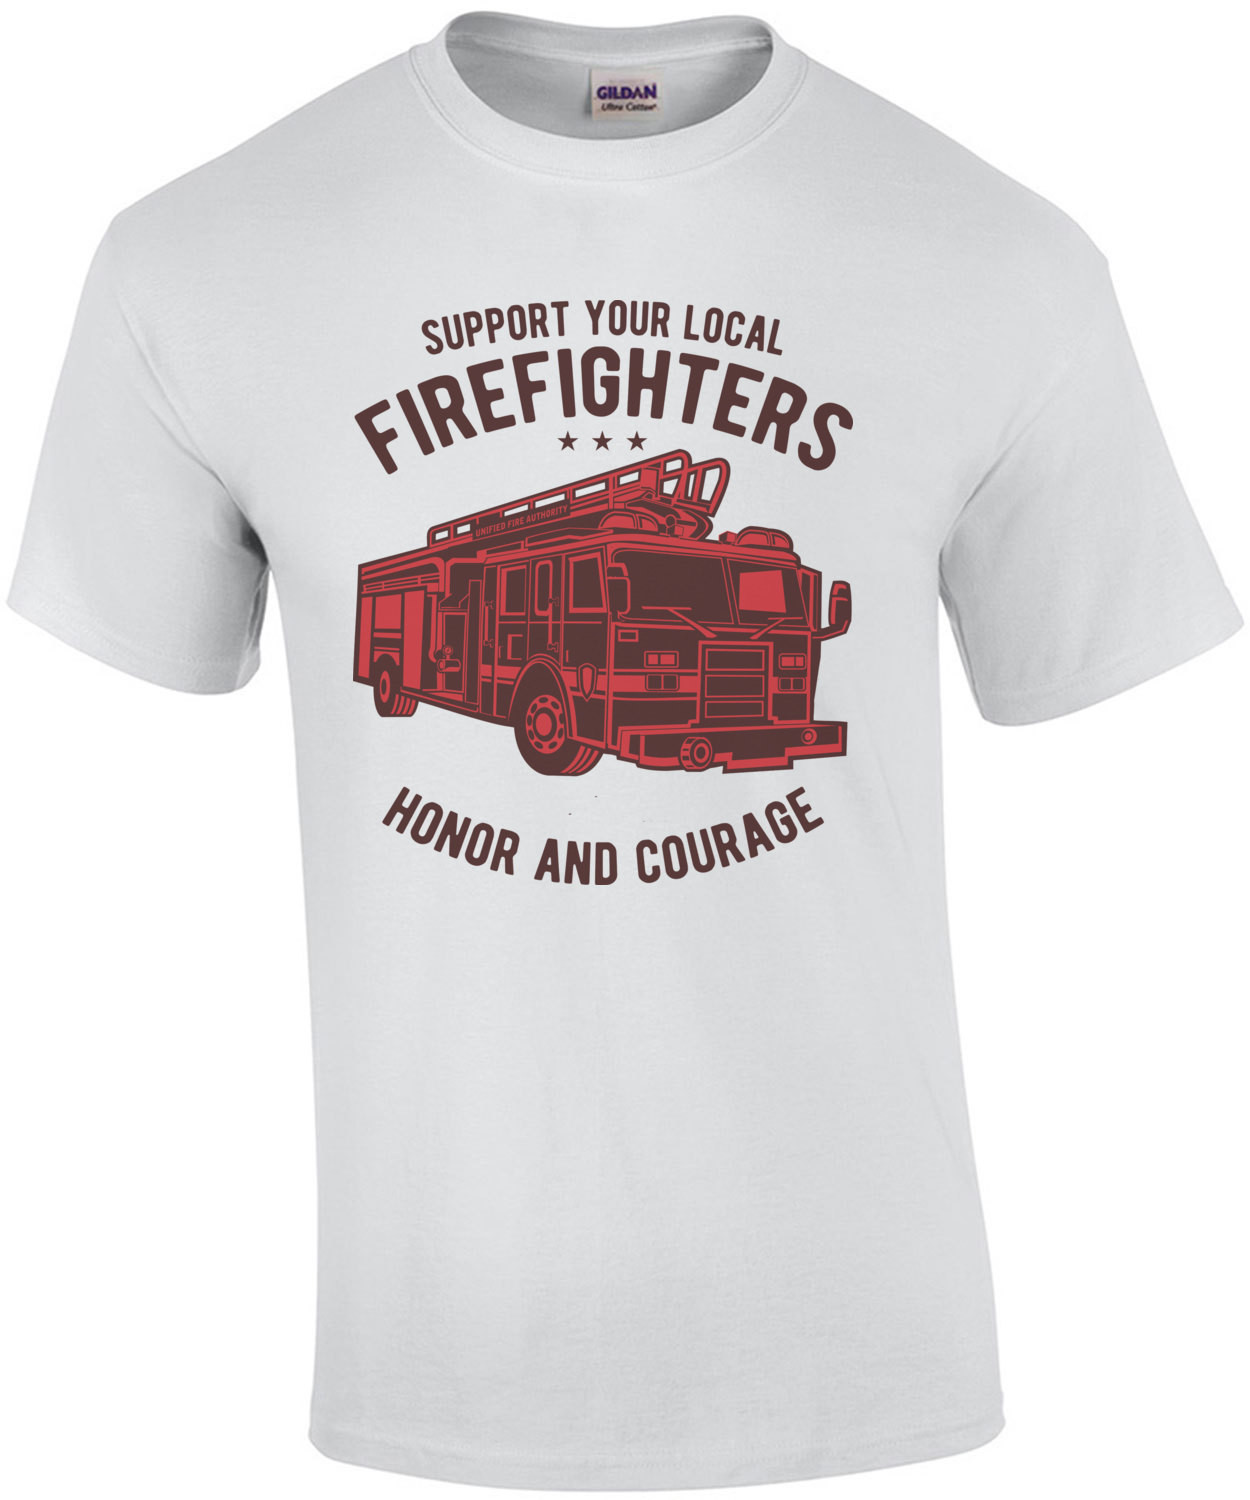 Support Your Local Firefighters Honor And Courage T-Shirt